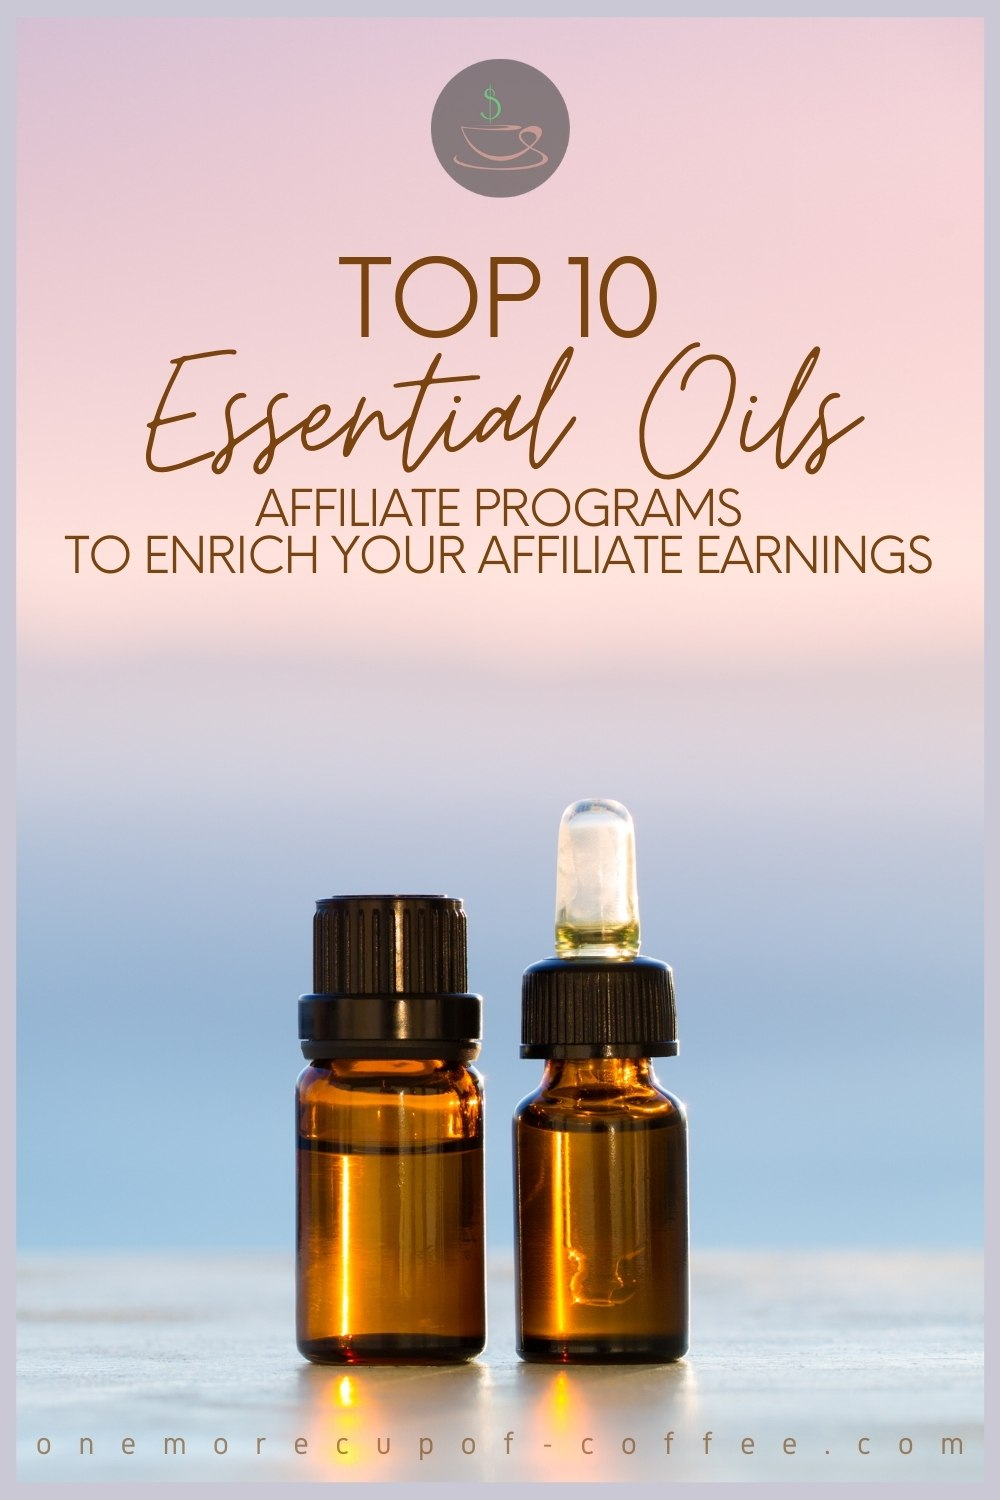 """closeup image of 2 small amber-colored bottles of essential oils, one with regular cap and one with a dropper, with text overlay """"Top 10 Essential Oils Affiliate Programs To Enrich Your Affiliate Earnings"""""""